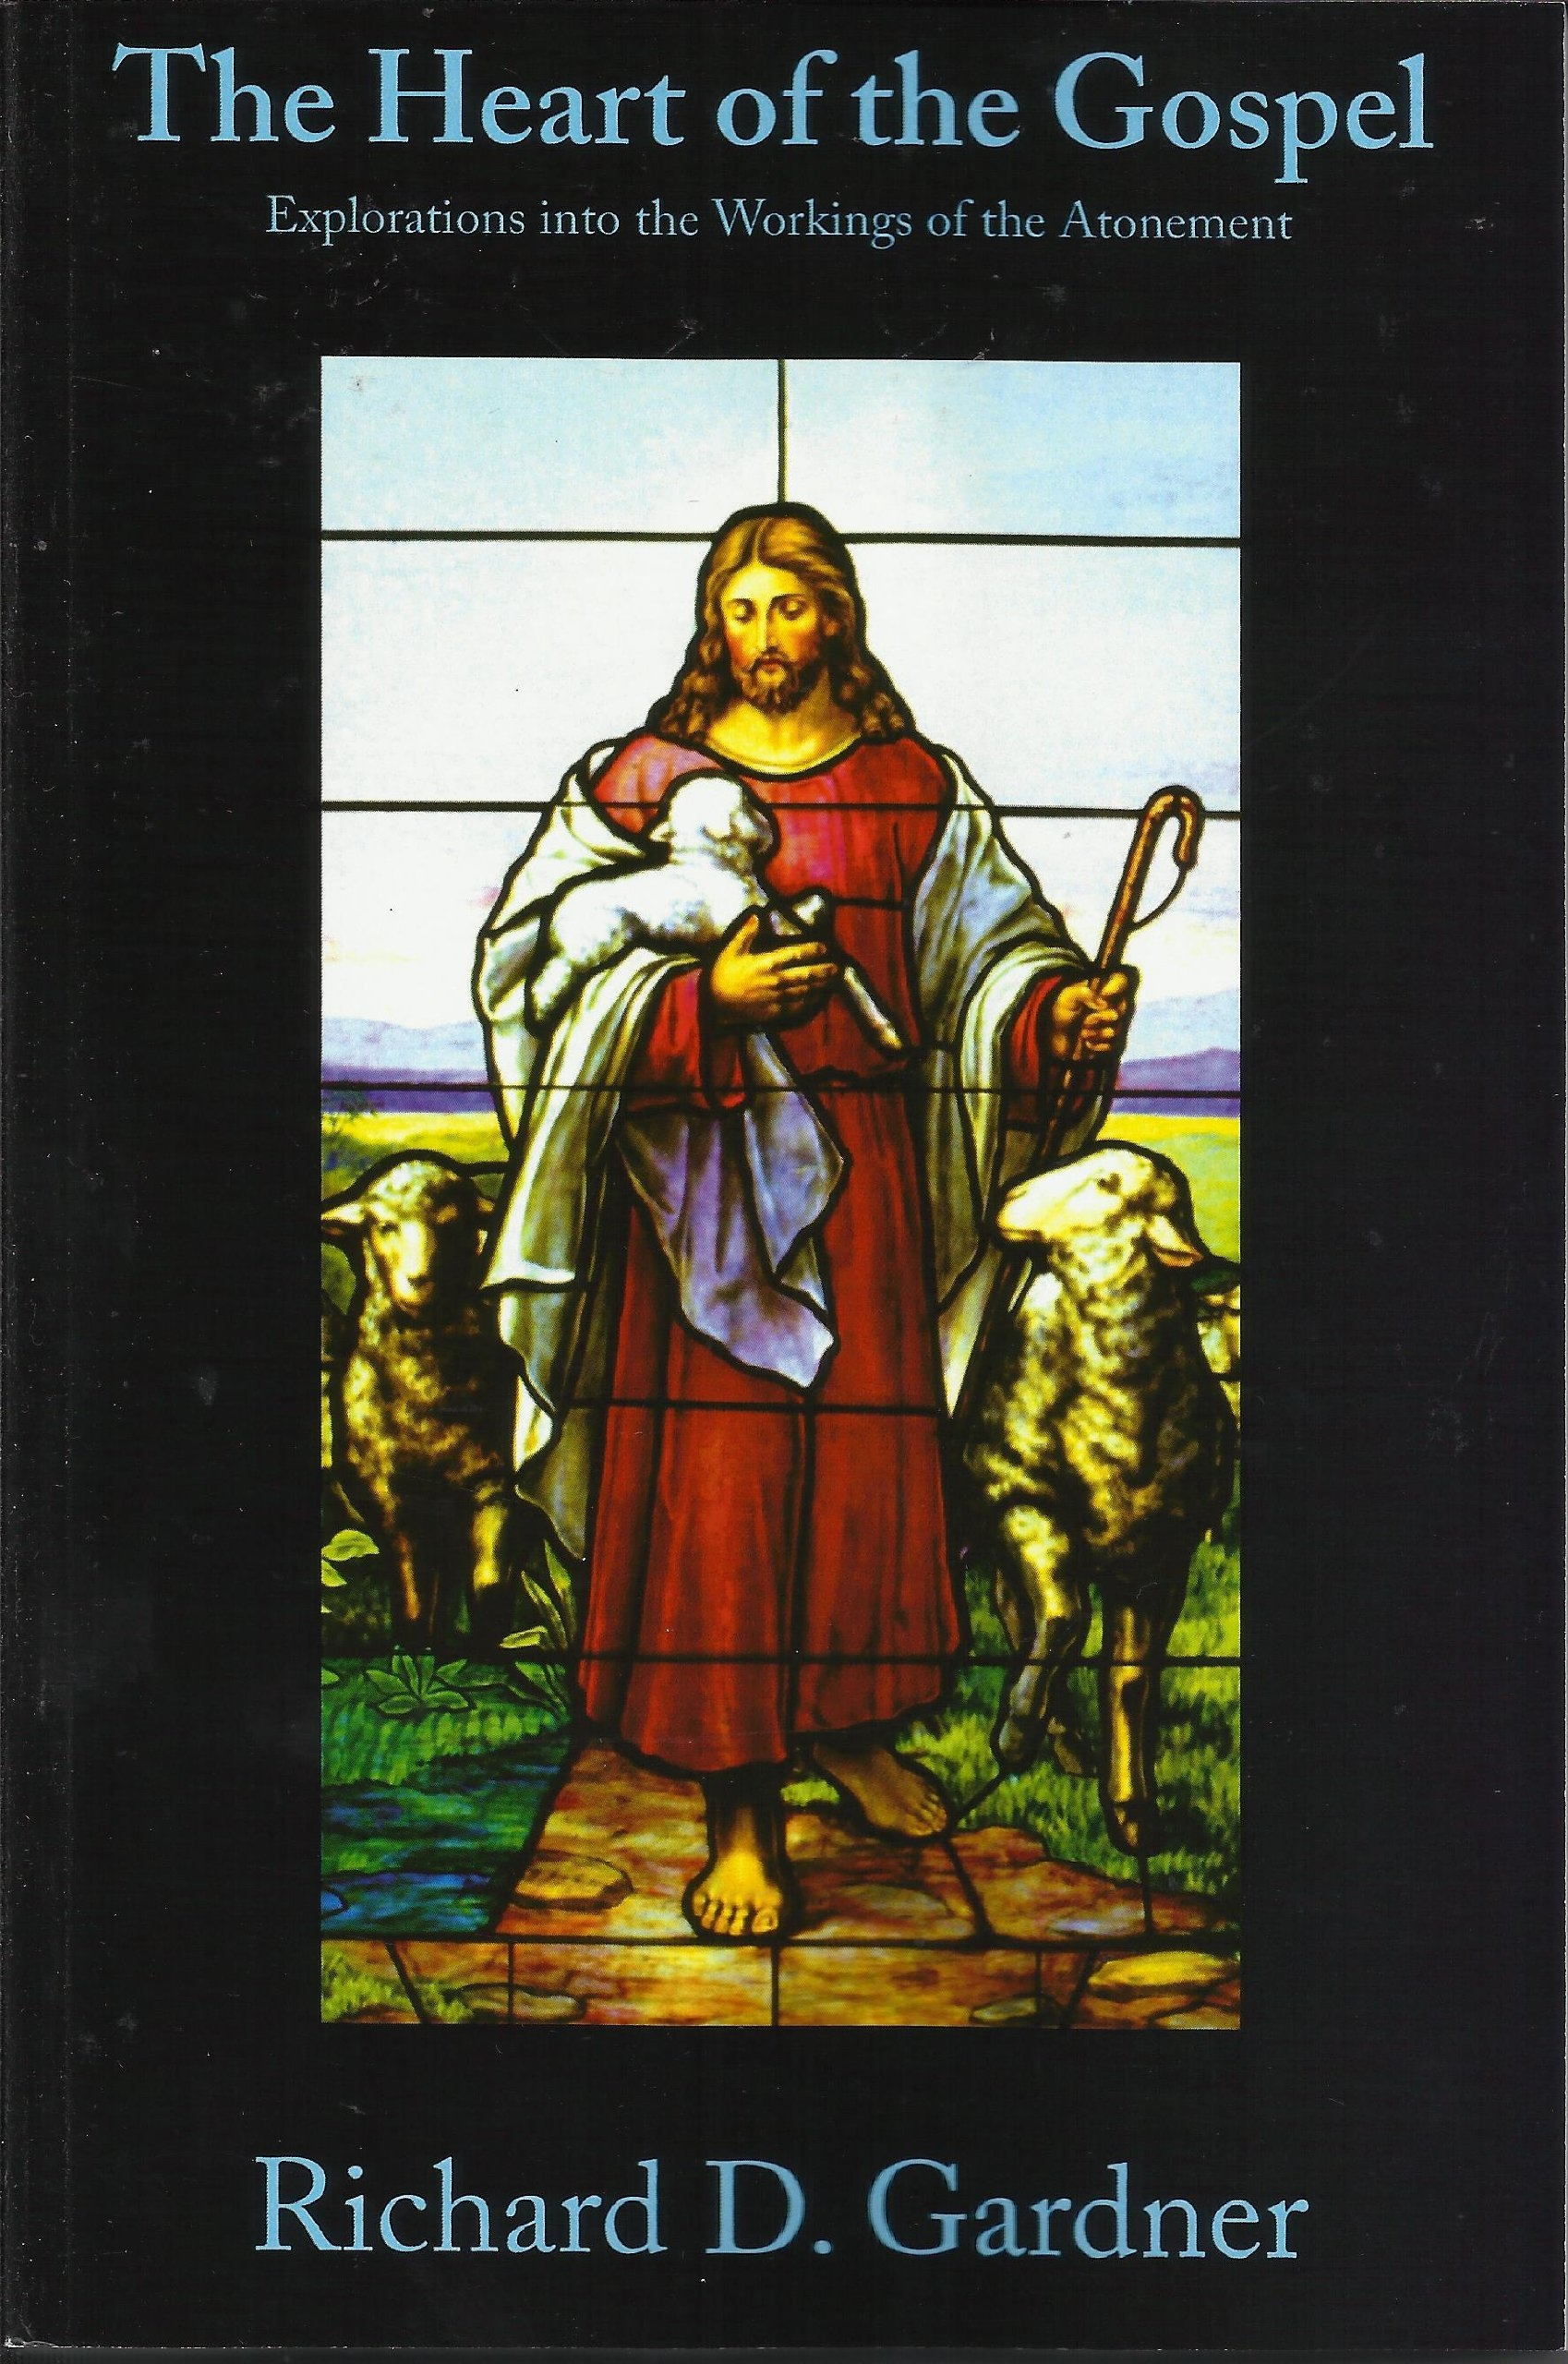 The Heart of the Gospel - Explorations into the Workings of the Atonement, Gardner, Richard D.